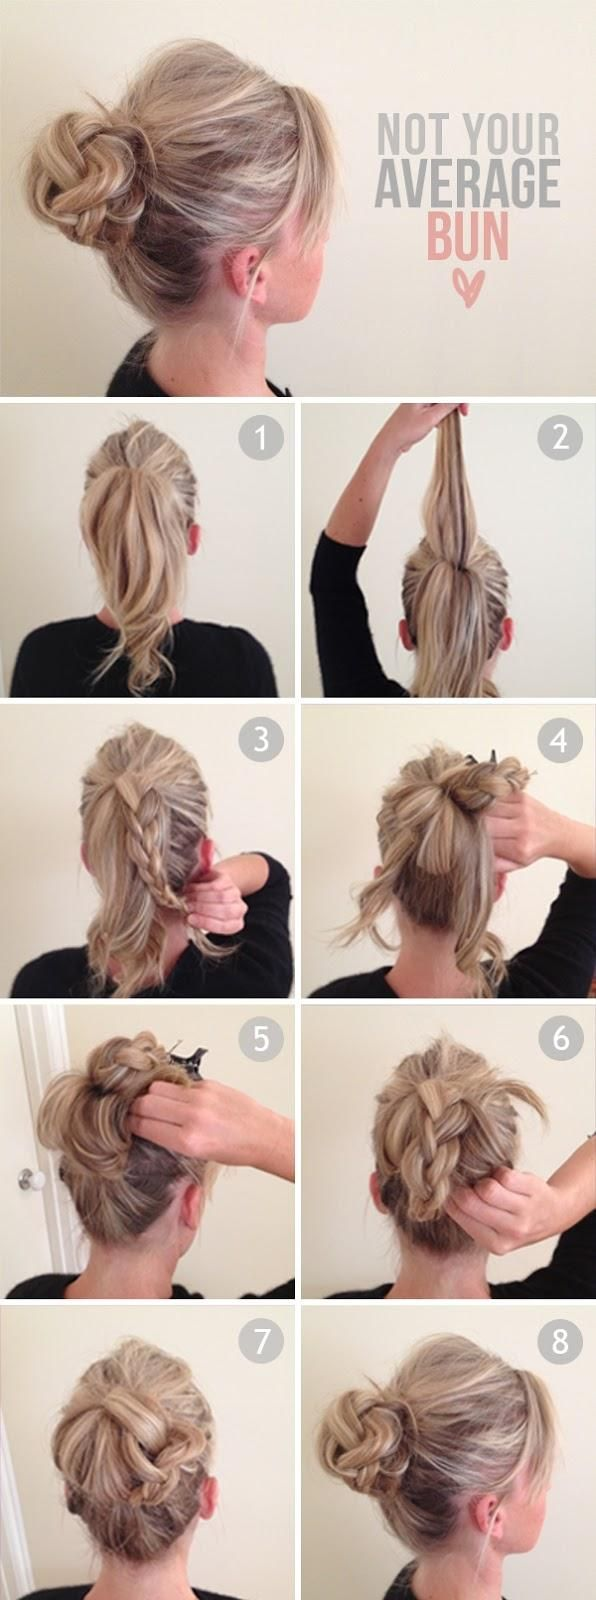 54 best hair images on pinterest hairstyle ideas tuto coiffure the steps to the perfect messy bun cotton candy bun sock bun braid into bun hairstyle tutorial side messy bun french braided bun not your average bun baditri Image collections